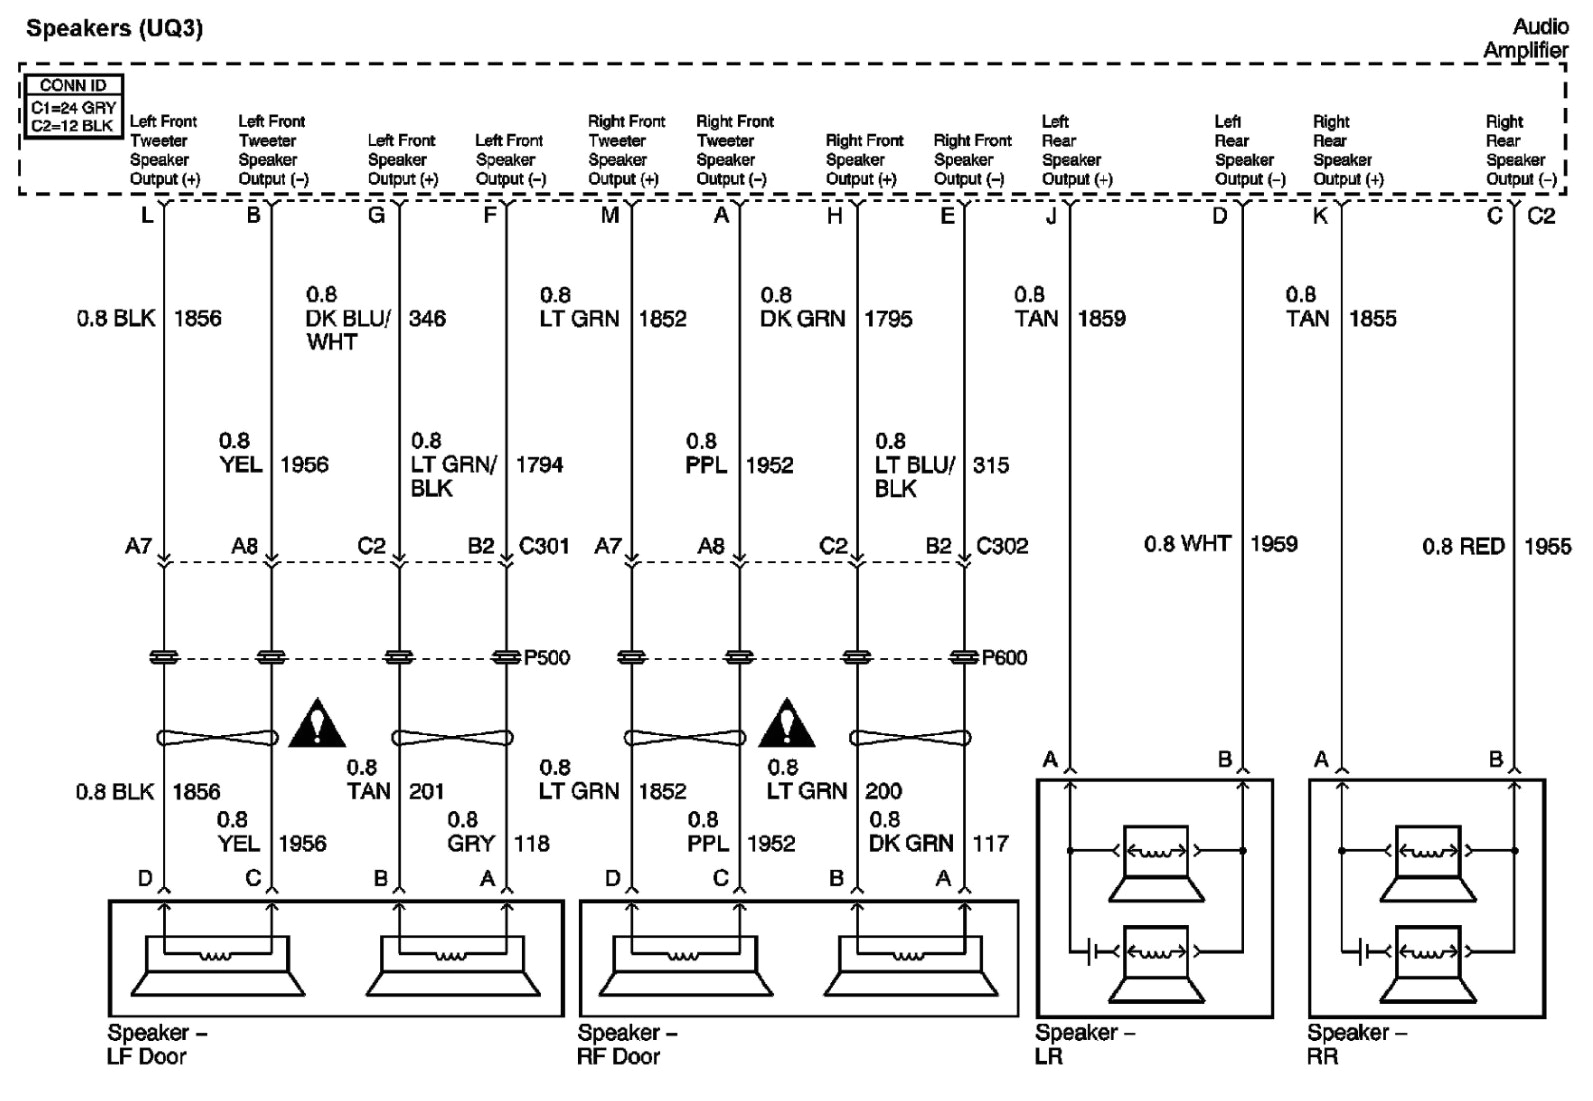 wiring diagram 2004 monte carlo seats belt another blog about 2000 monte carlo wiring diagram wiring